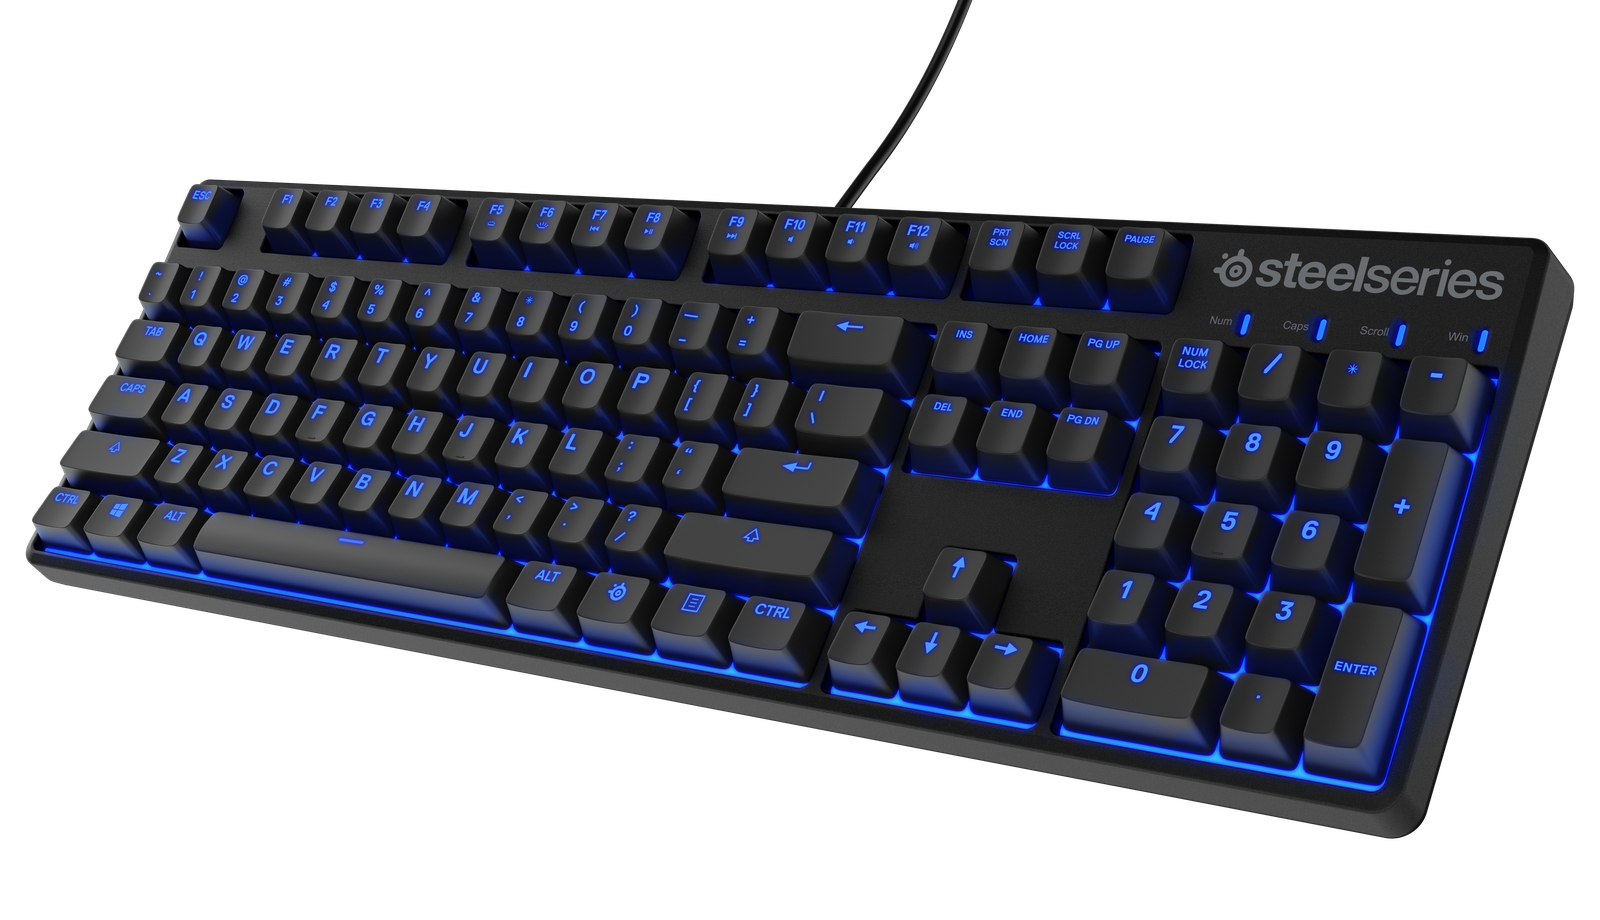 SteelSeries lance un clavier gaming compact